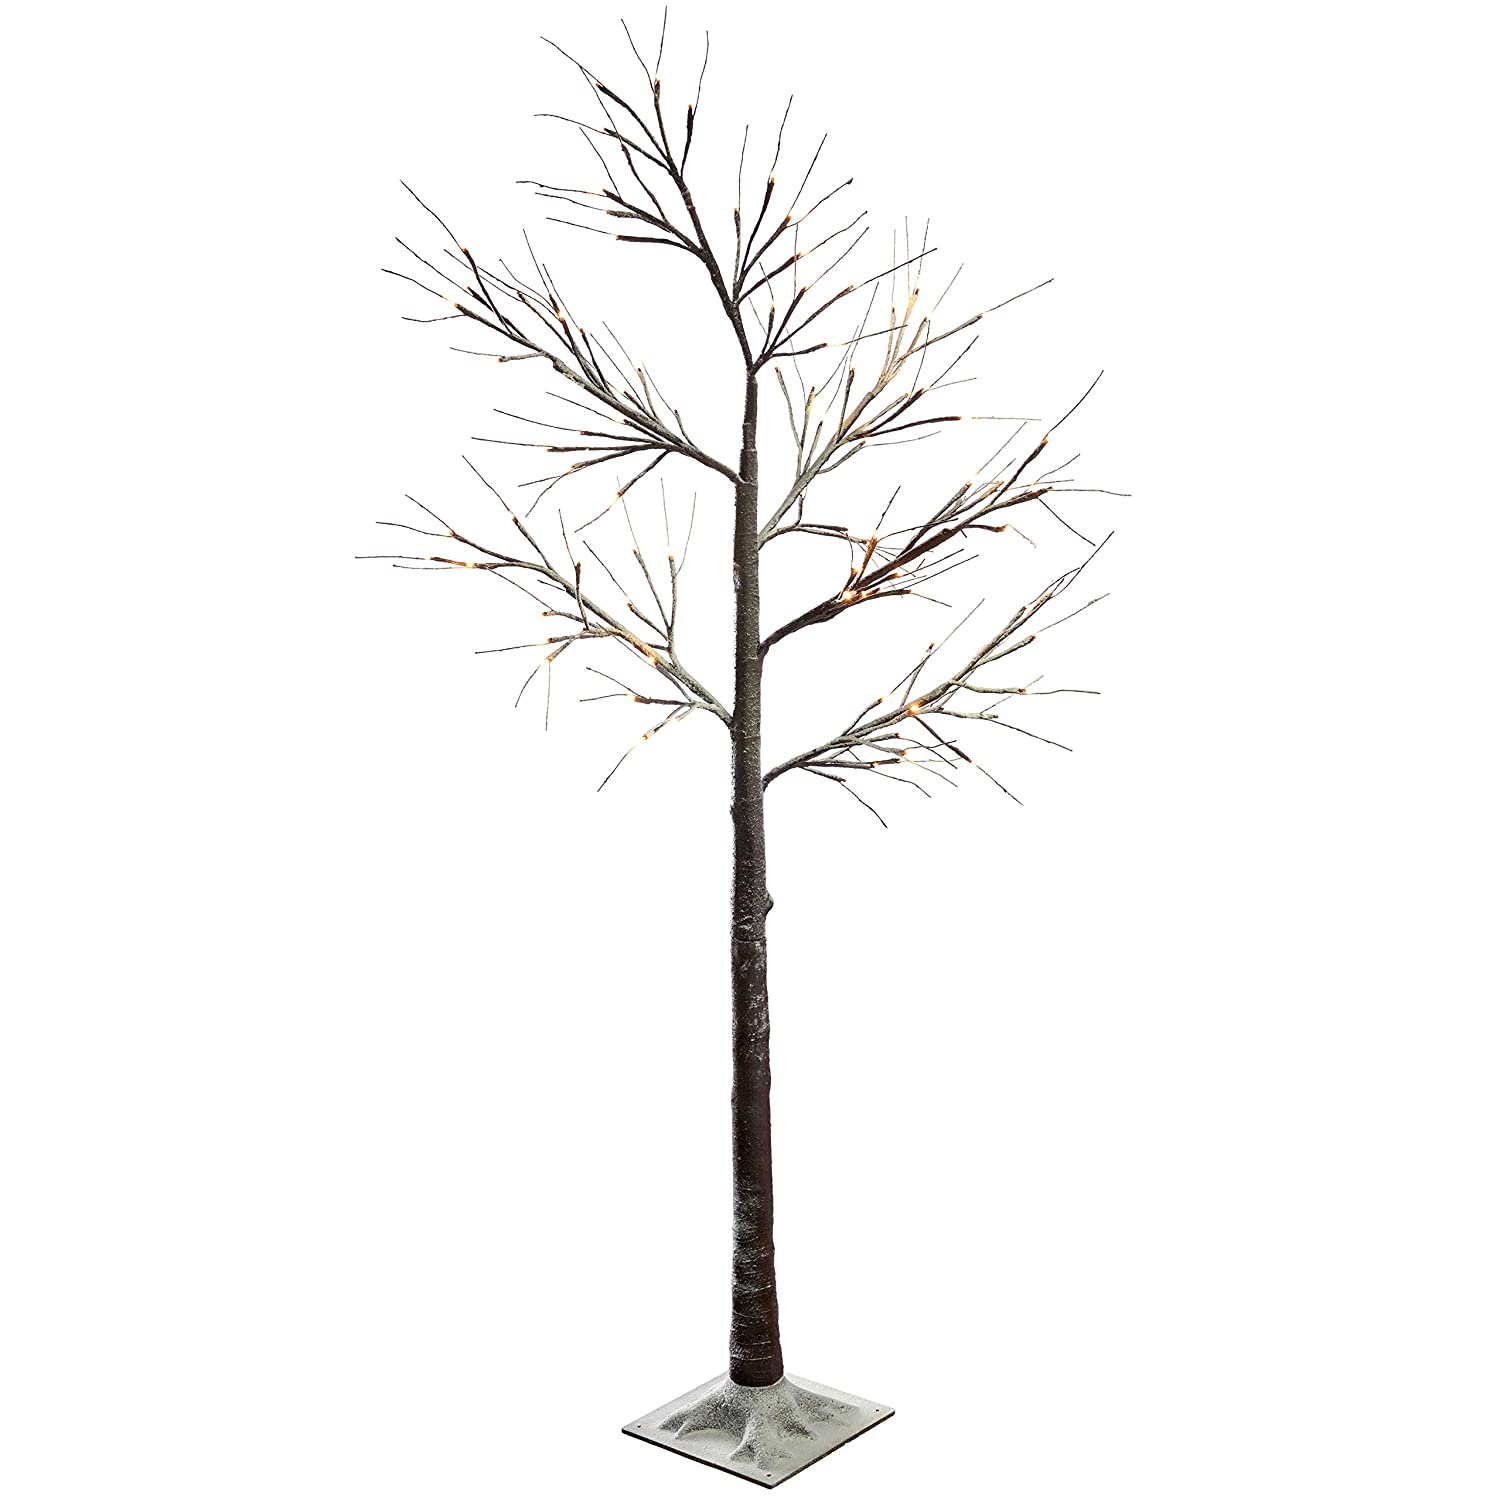 WeRChristmas Pre-Lit LED Twig Christmas Tree with Snow Effect Decoration, 2 feet/60 cm - Brown/White WRC-7464